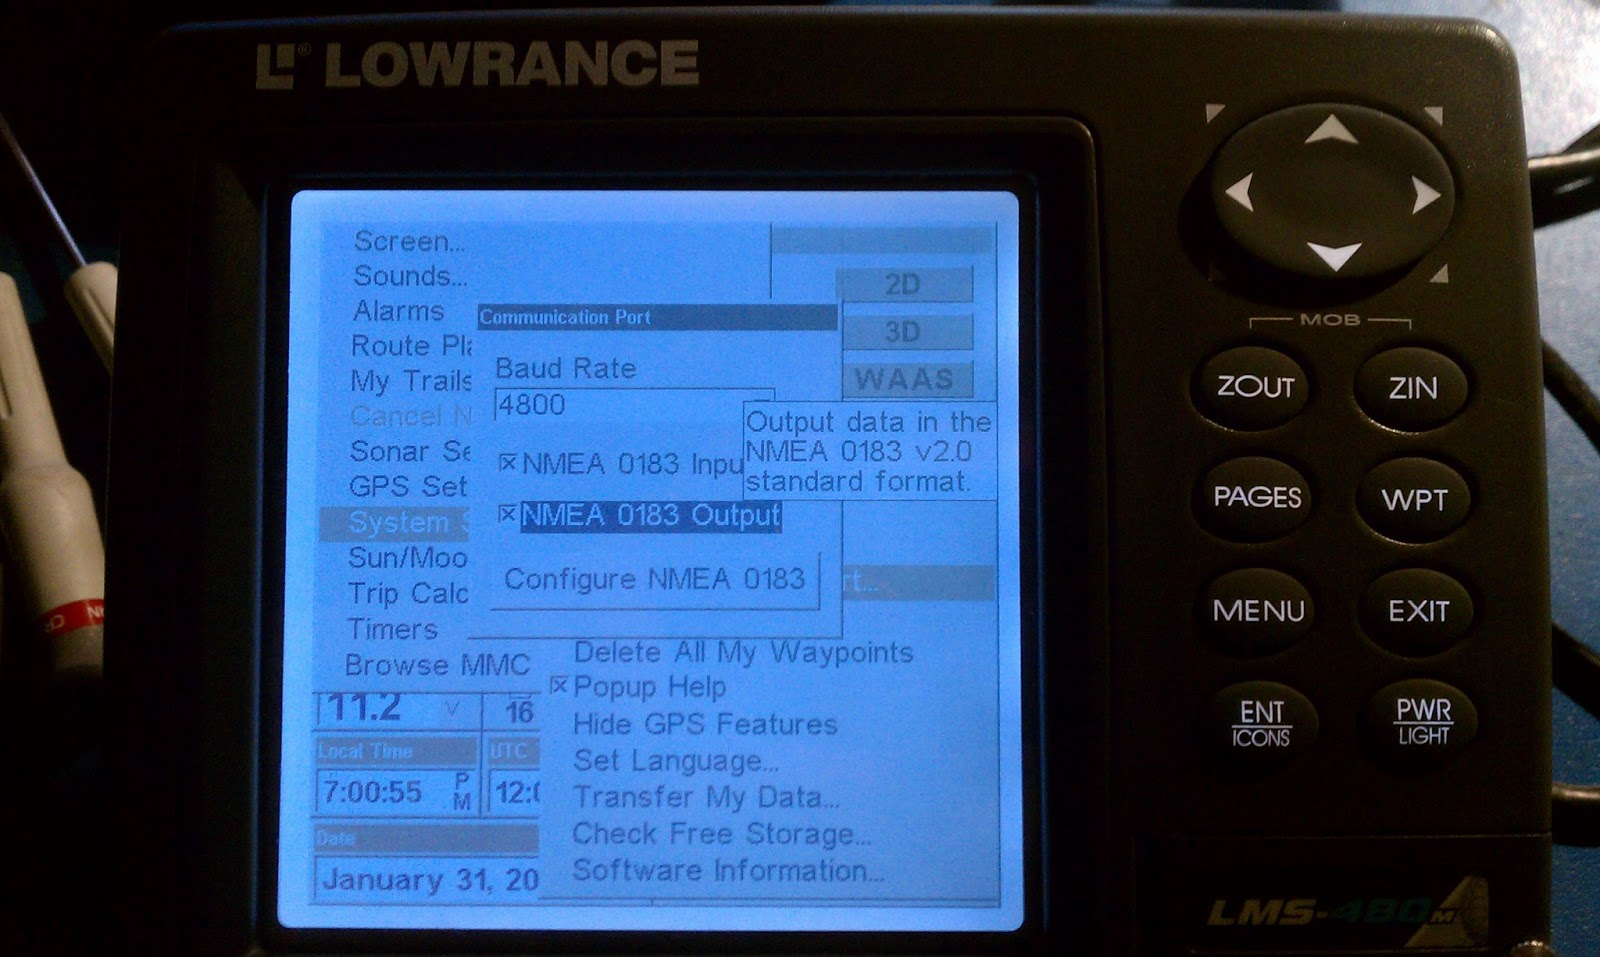 lowrance gps antenna wiring diagram better wiring diagram online lowrance hds troubleshooting lowrance nmea 0183 wiring diagram free download [ 1600 x 957 Pixel ]